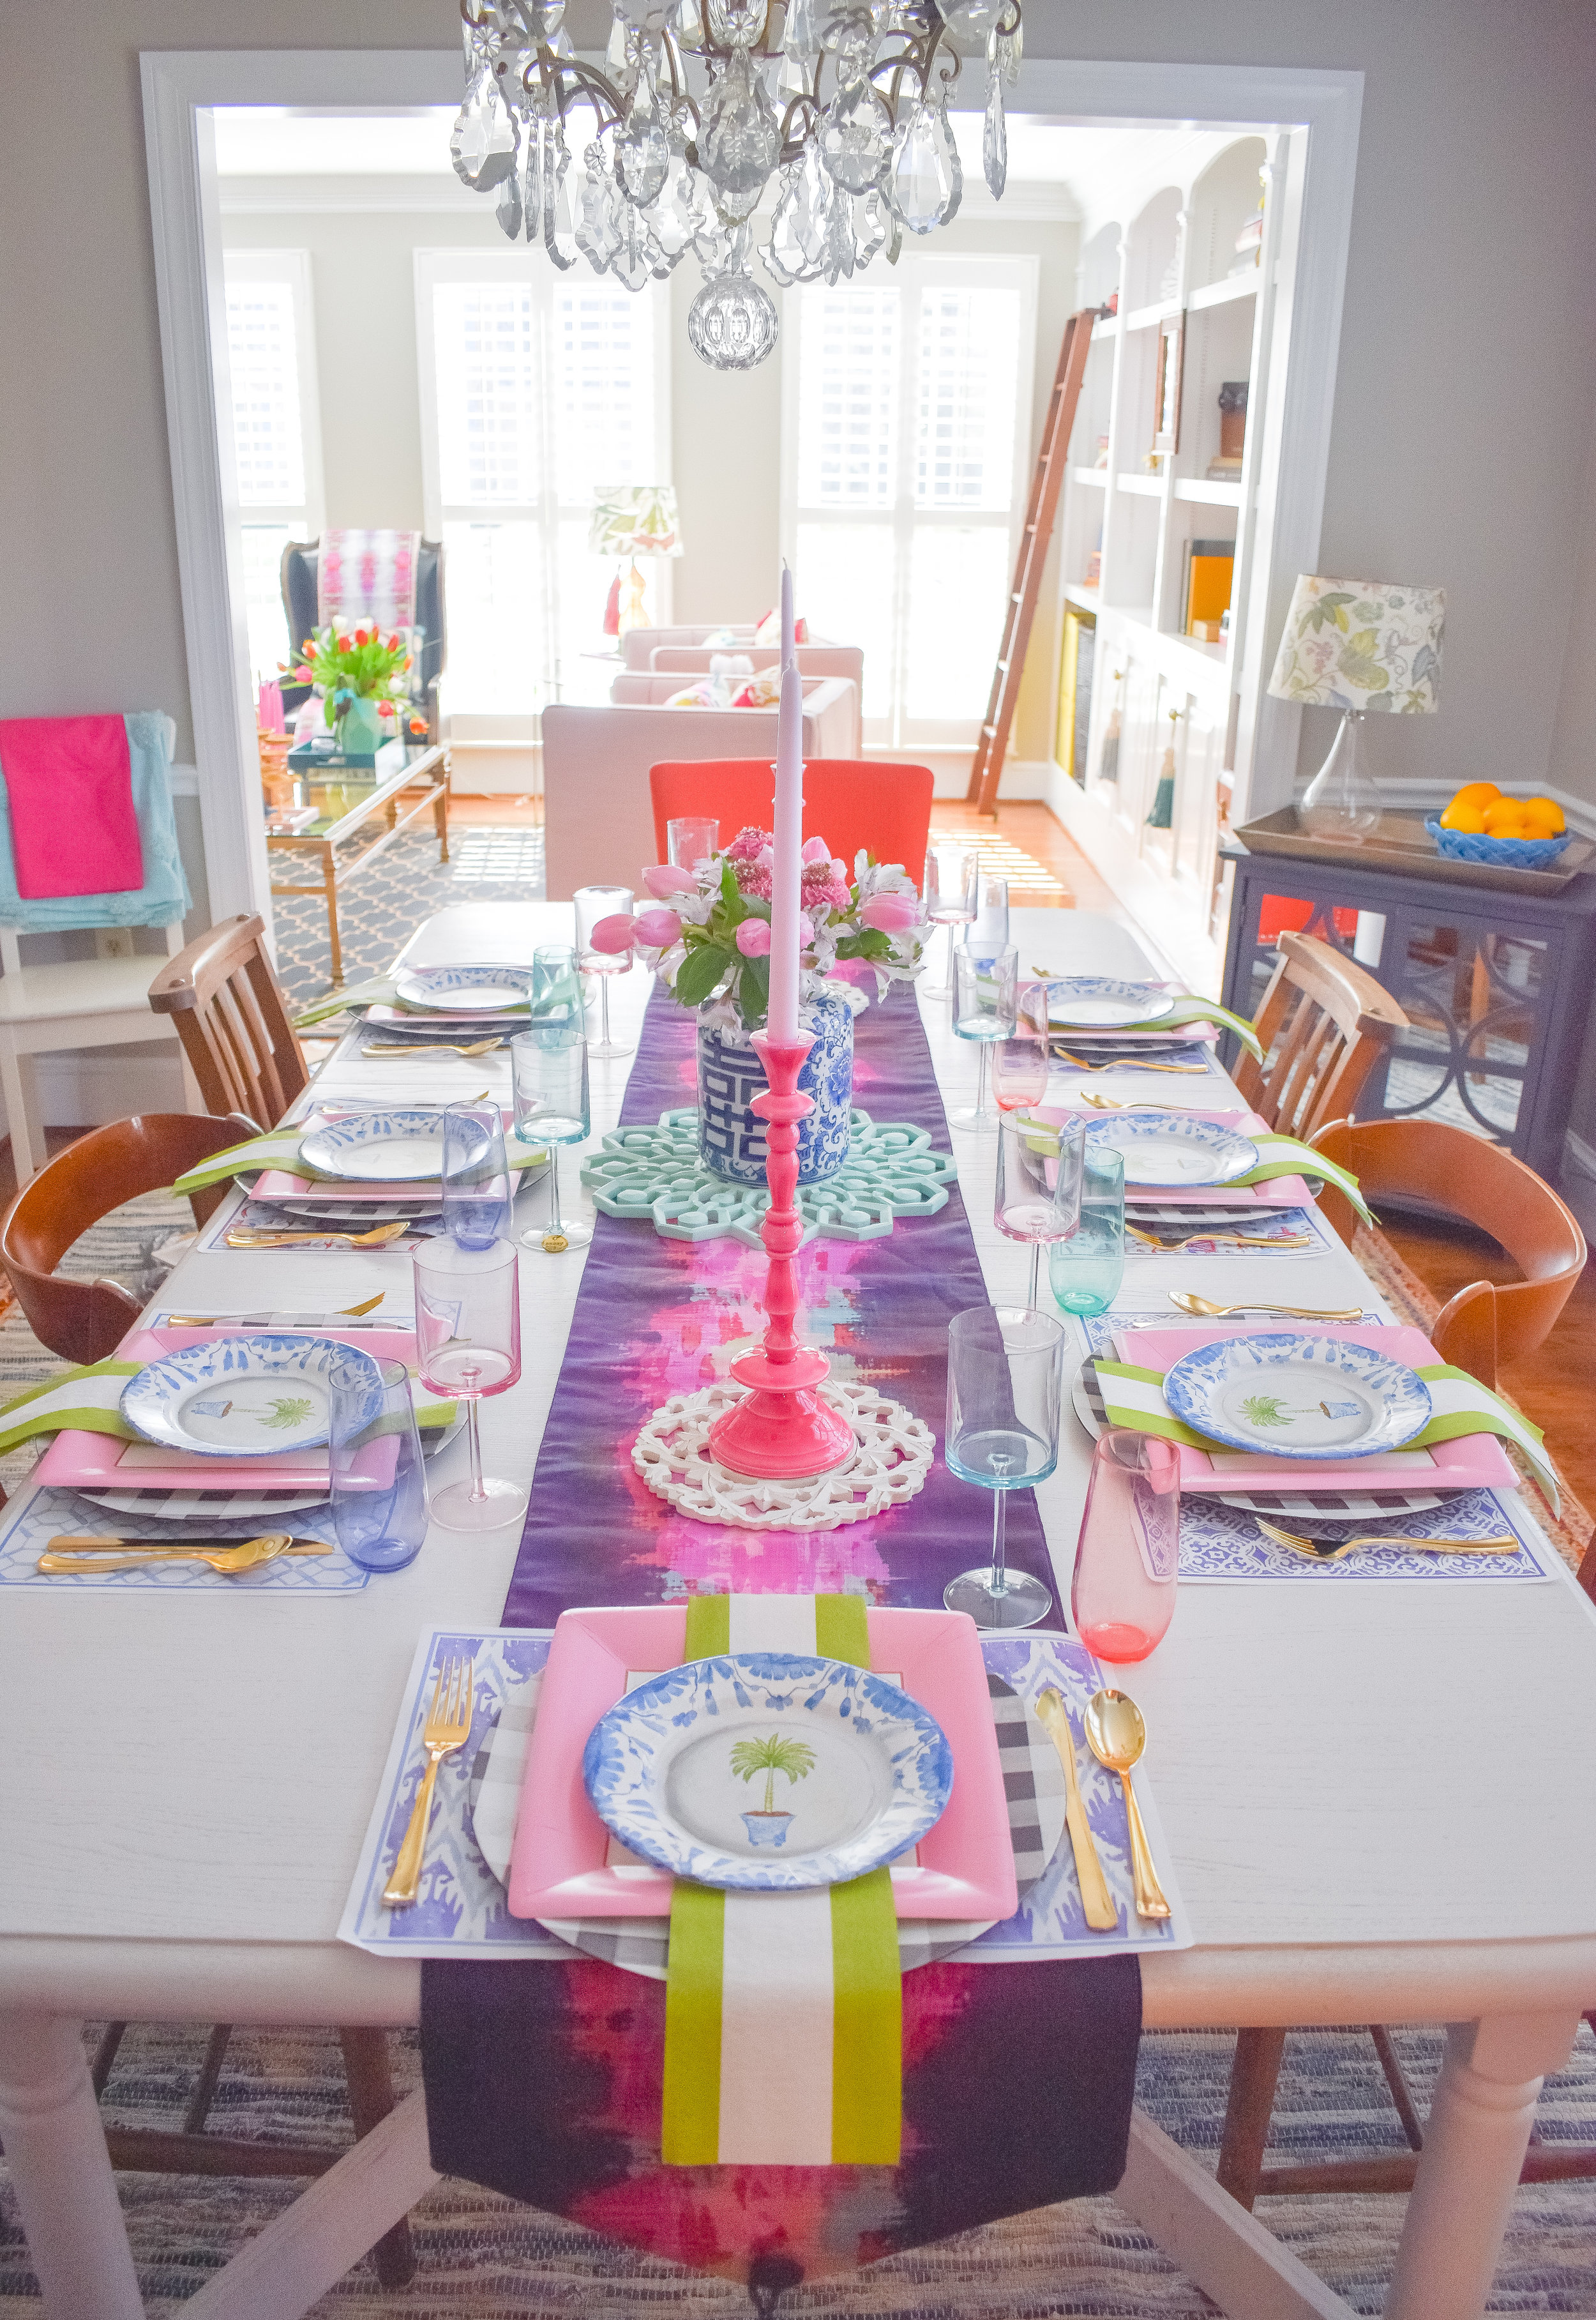 Plates and Napkins:  Caspari Line  Colorful Champagne Glasses:  Spritz for Target  Wine Glasses: Home Goods Candlesticks: Home Goods Table Runner:  Boho Luxe Home